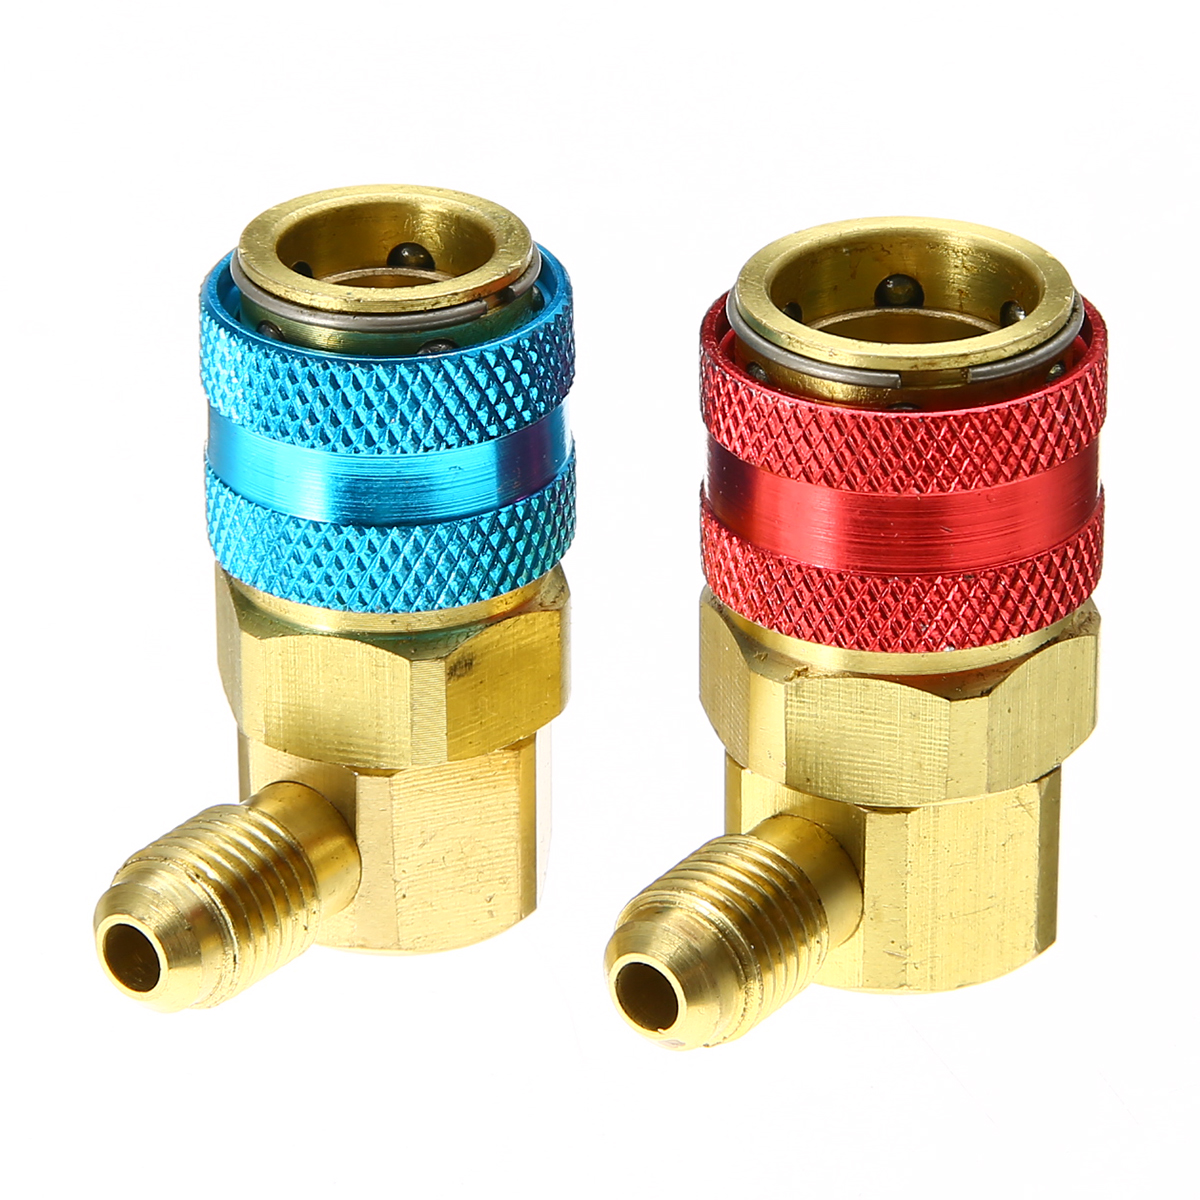 2pcs R134A System Adapters High/Low Quick Couplers 1/4 SAE Male Car Automotive Air Conditioning Quick Connector Adapters Mayitr a c system adjustable air conditioner quick couplers connector burgundy for car